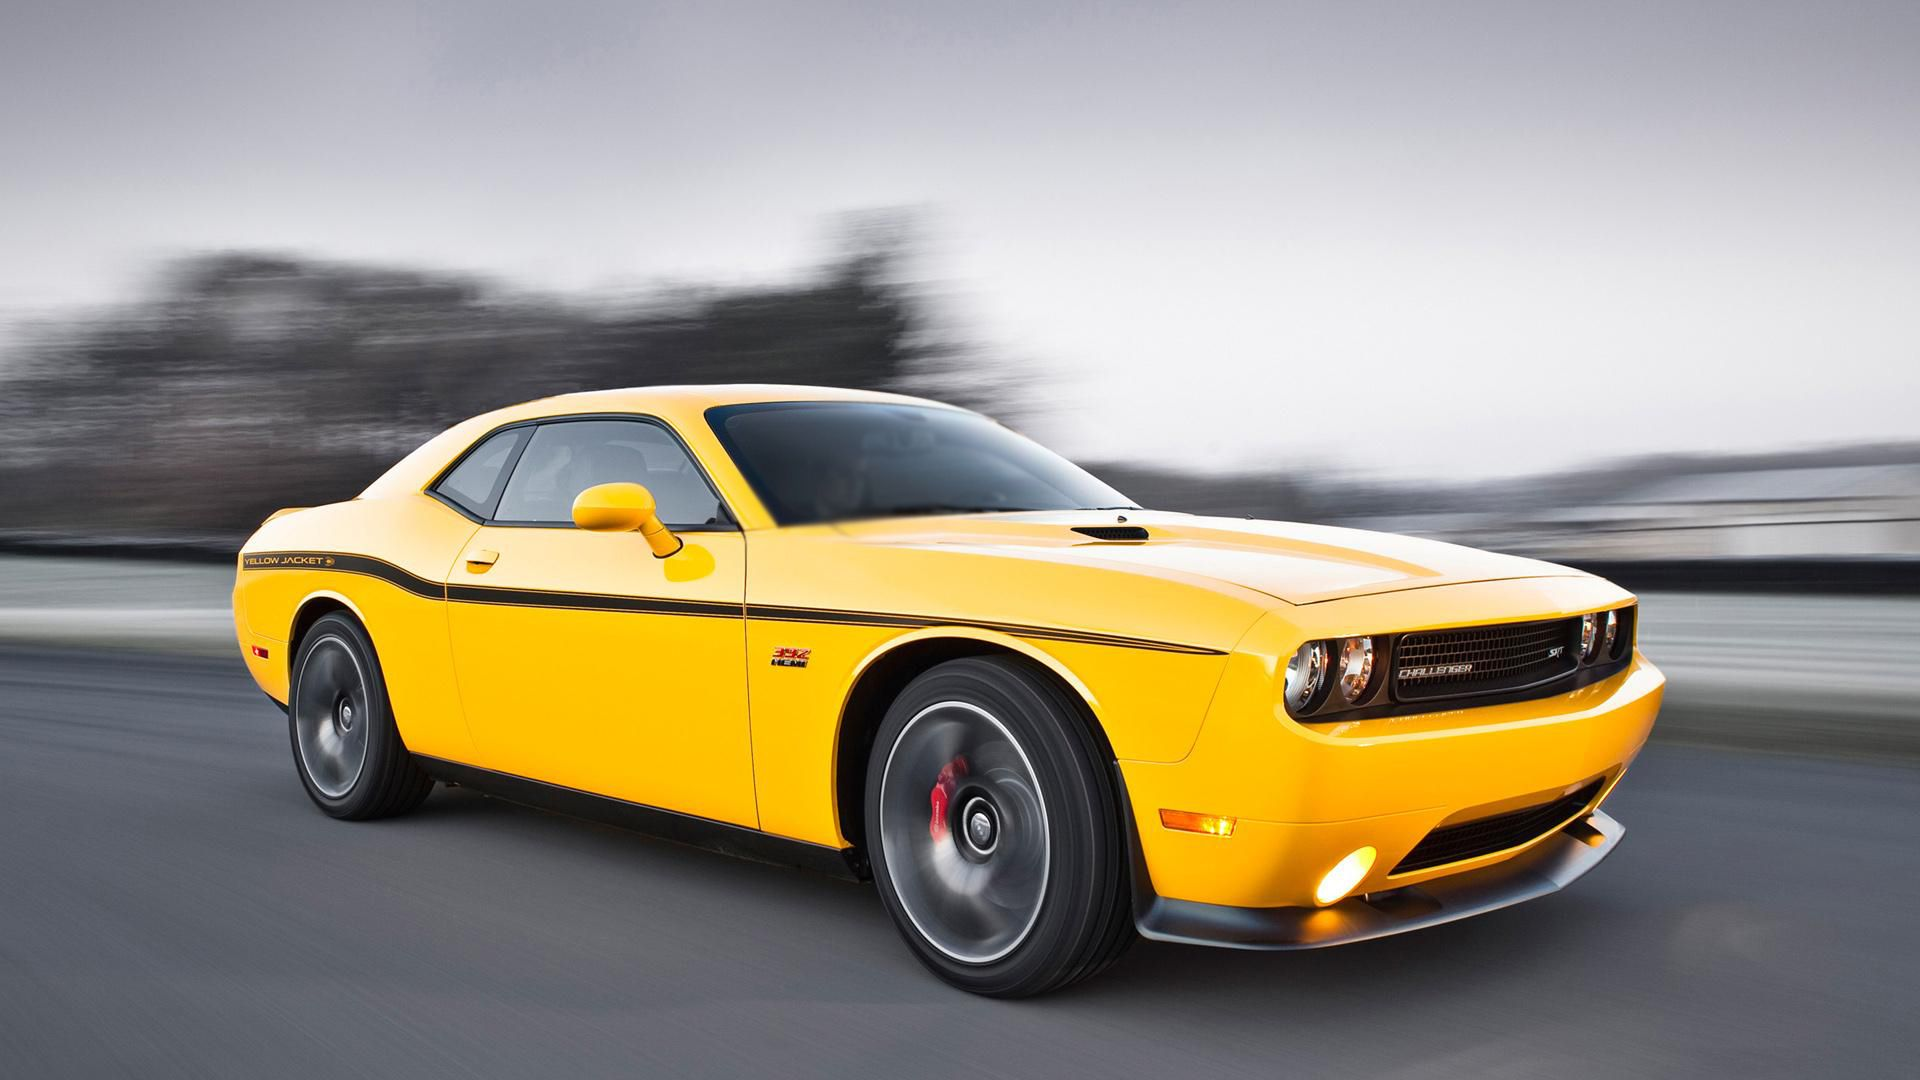 dodge challenger srt 8 in yellow color